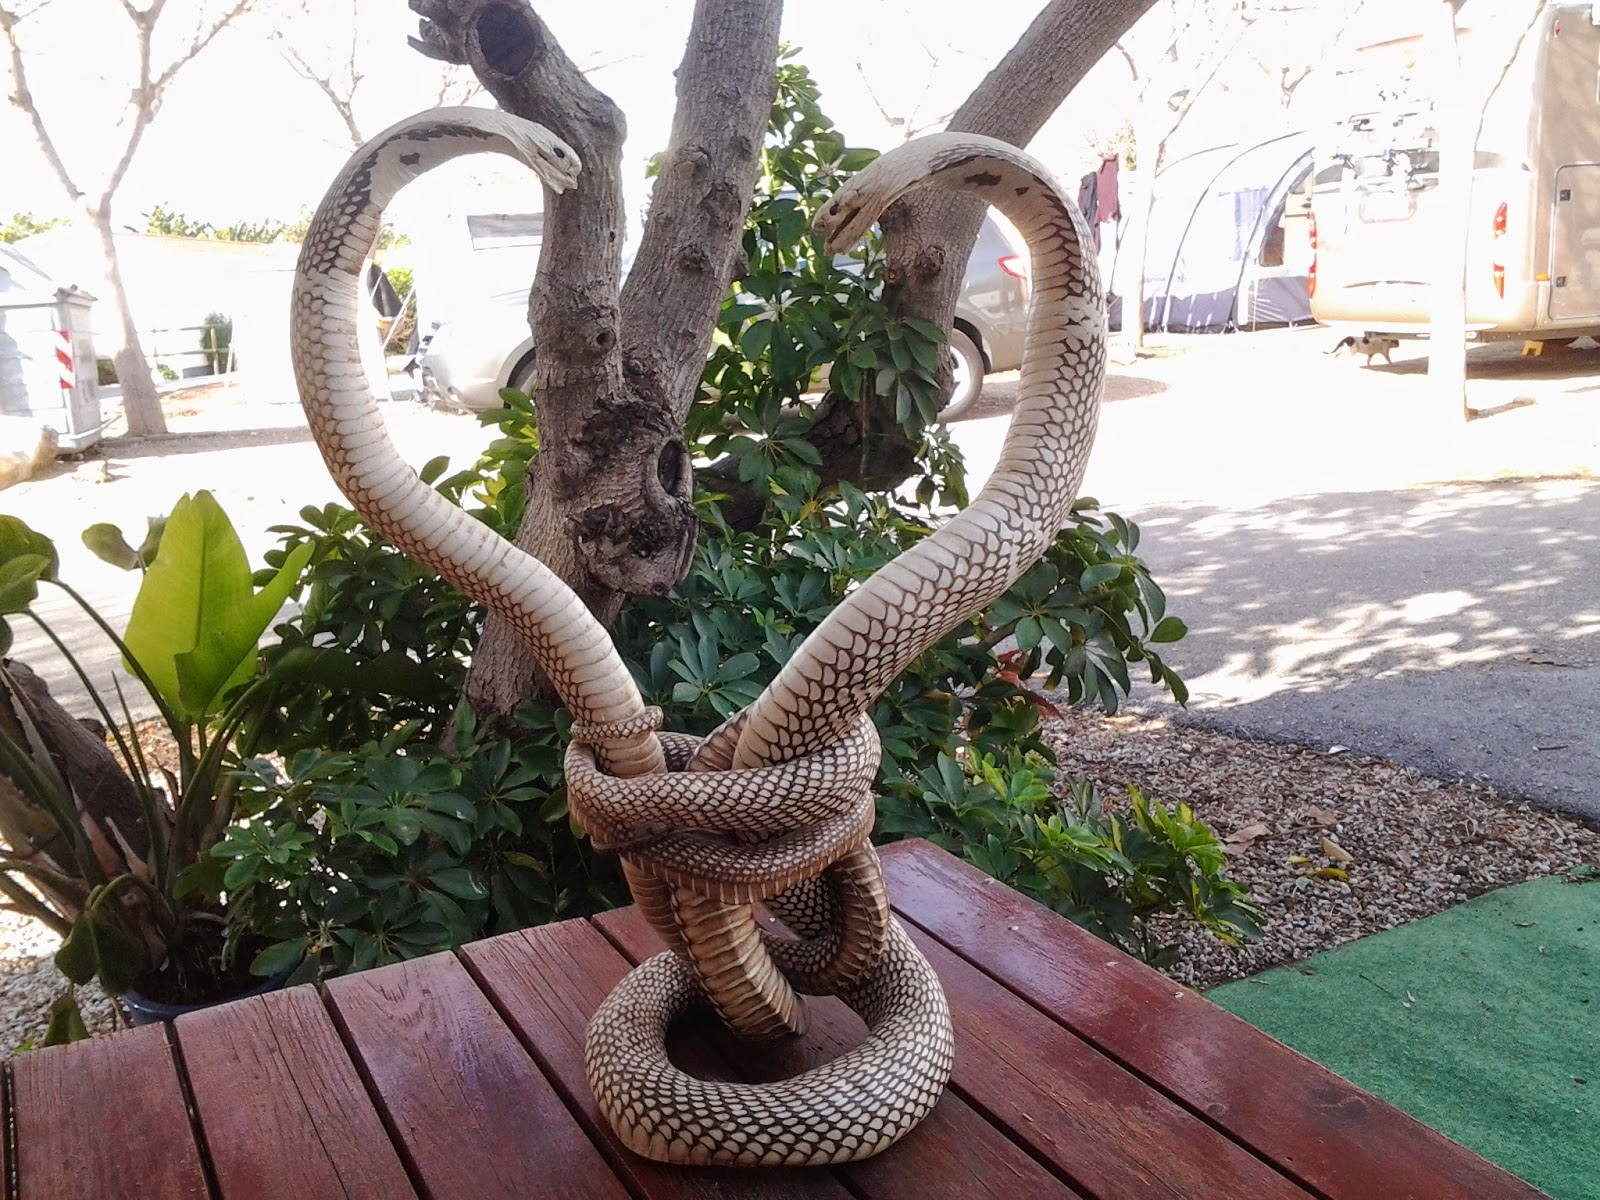 Digame: For Sale Stuffed Cobras.....